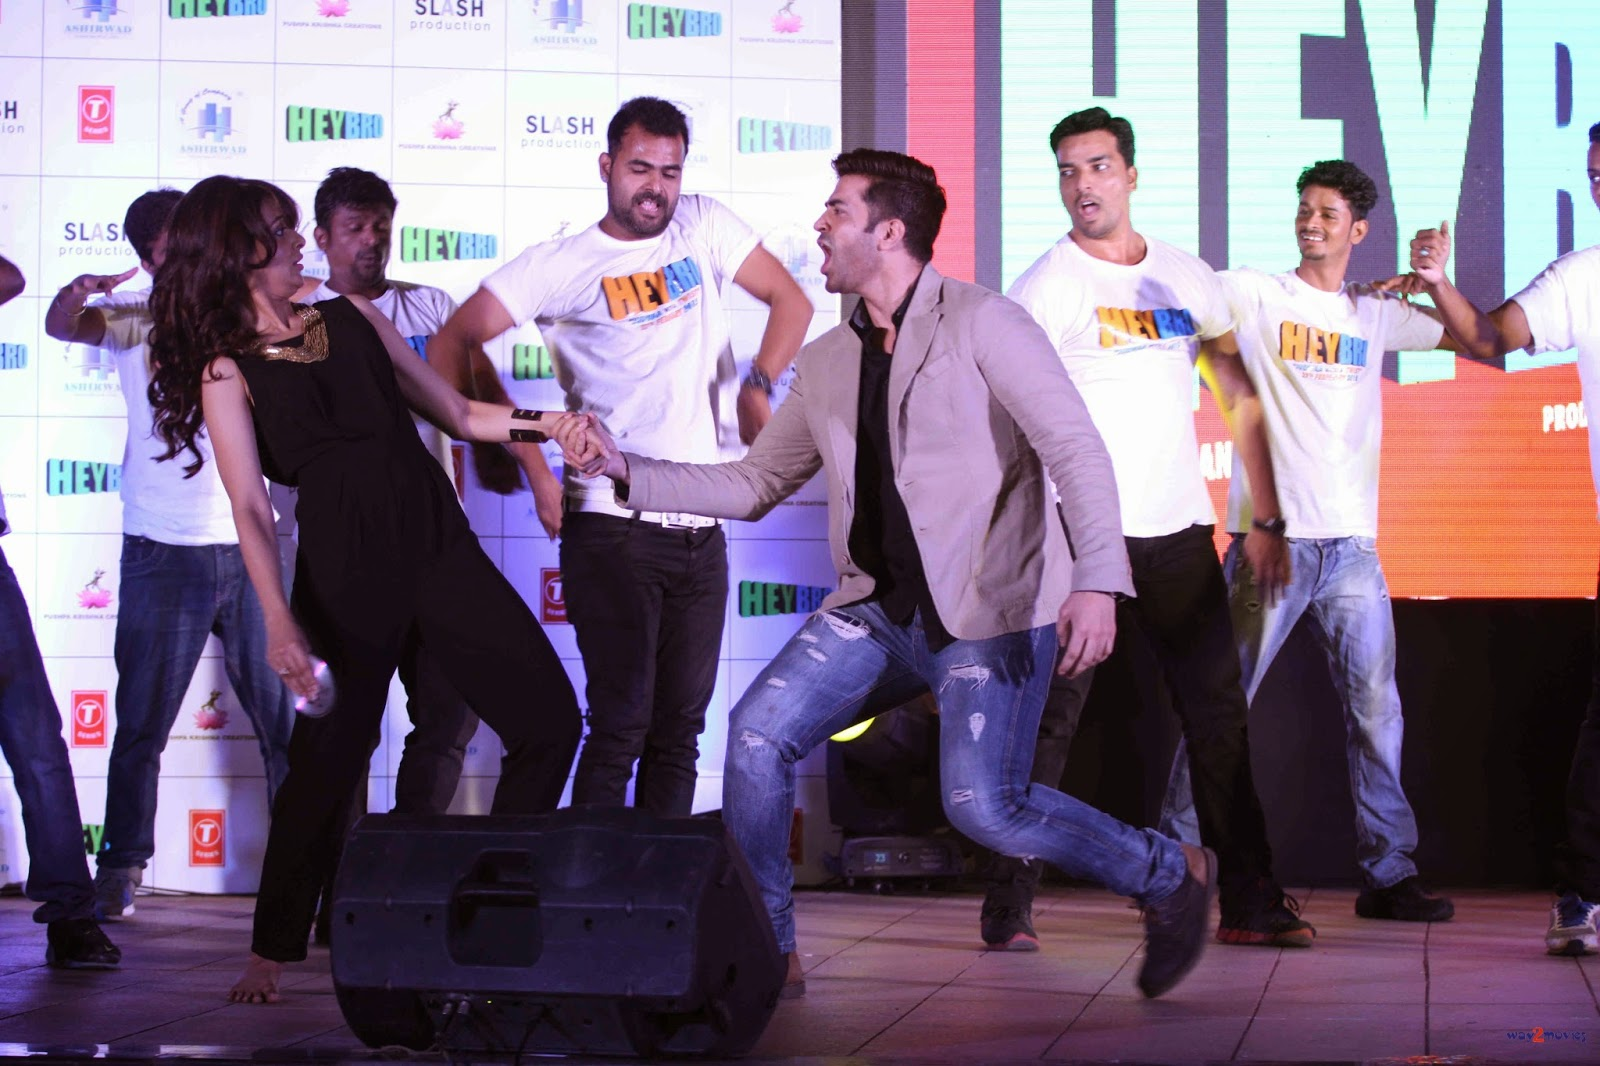 Celebs at Music success bash of 'Hey Bro'